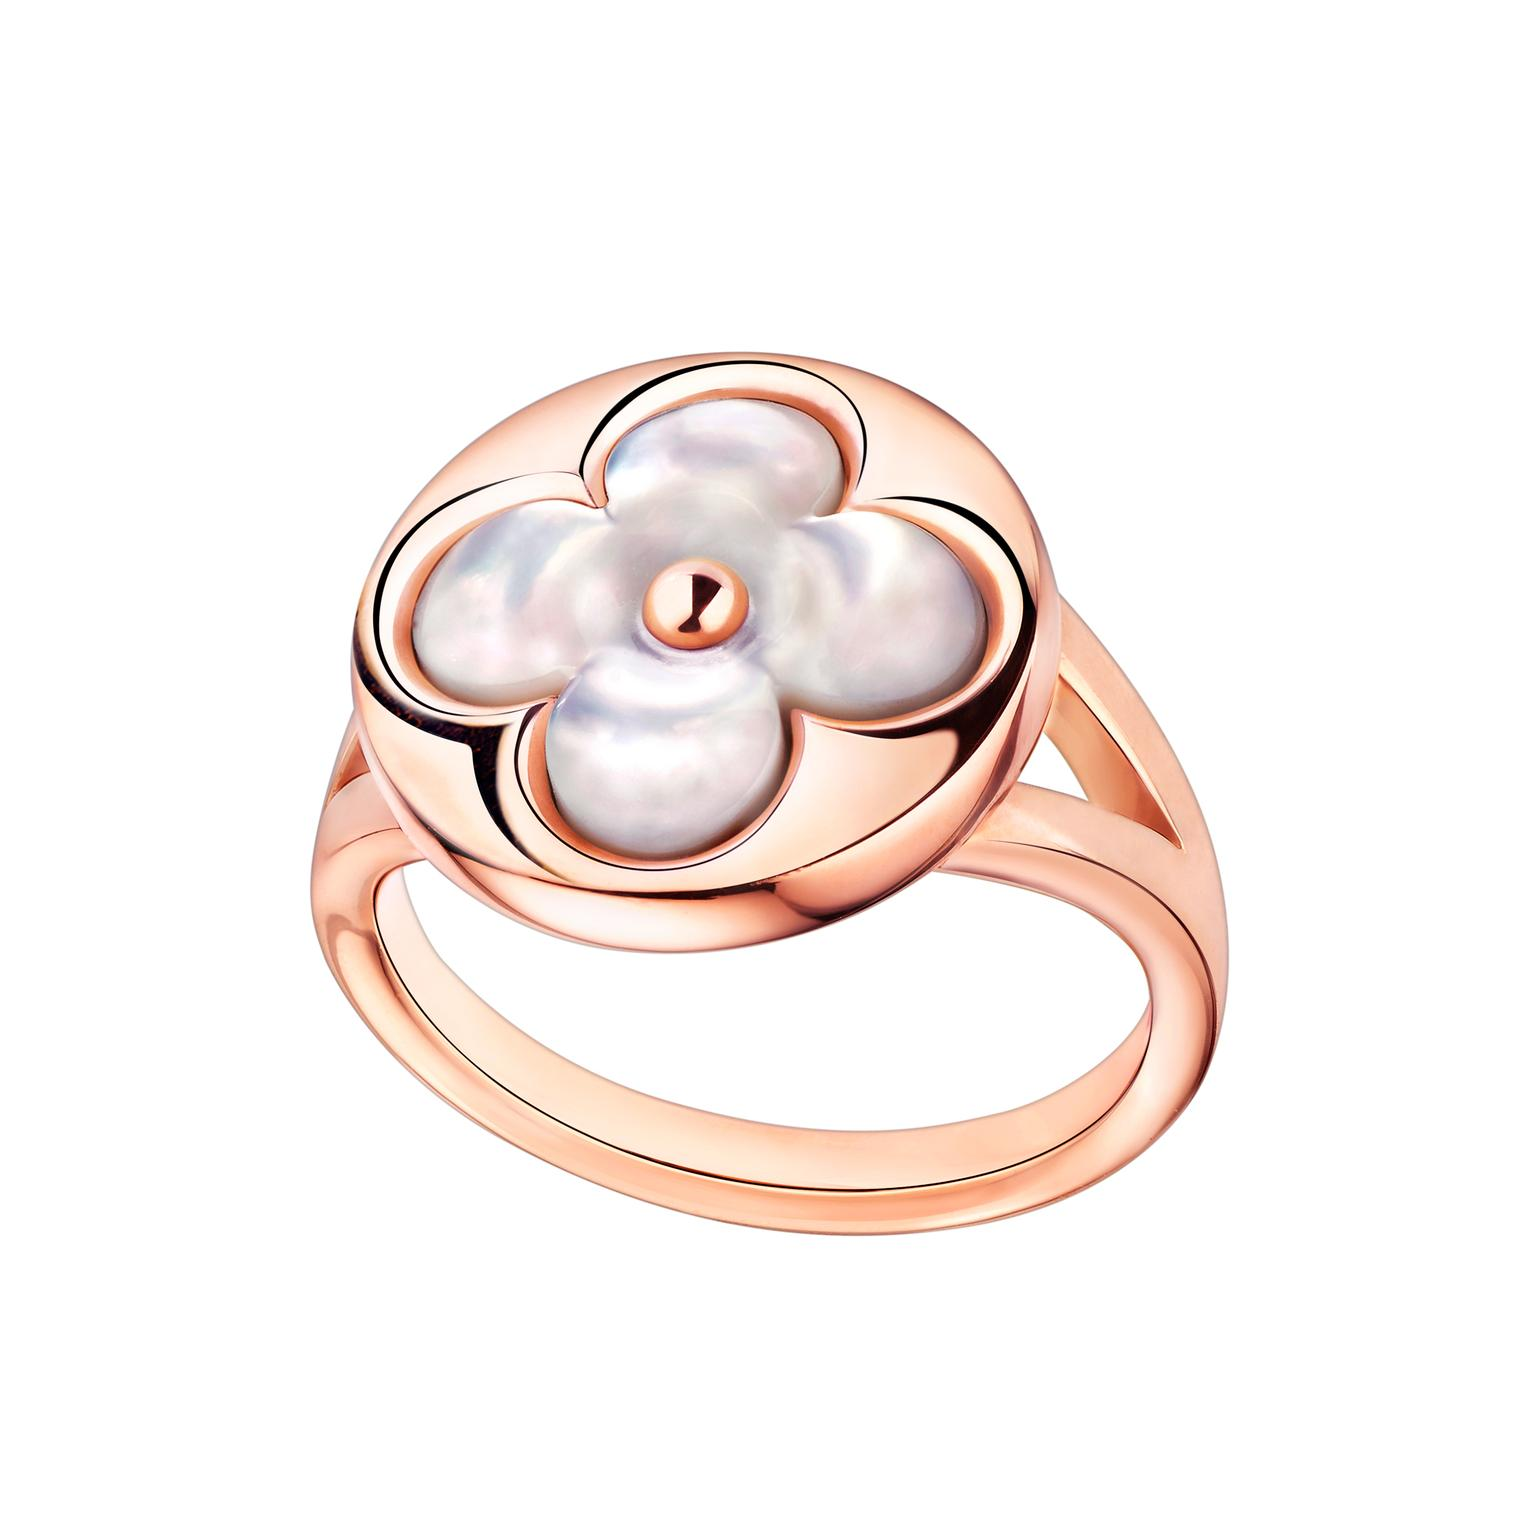 Louis Vuitton Blossom mother-of-pearl ring